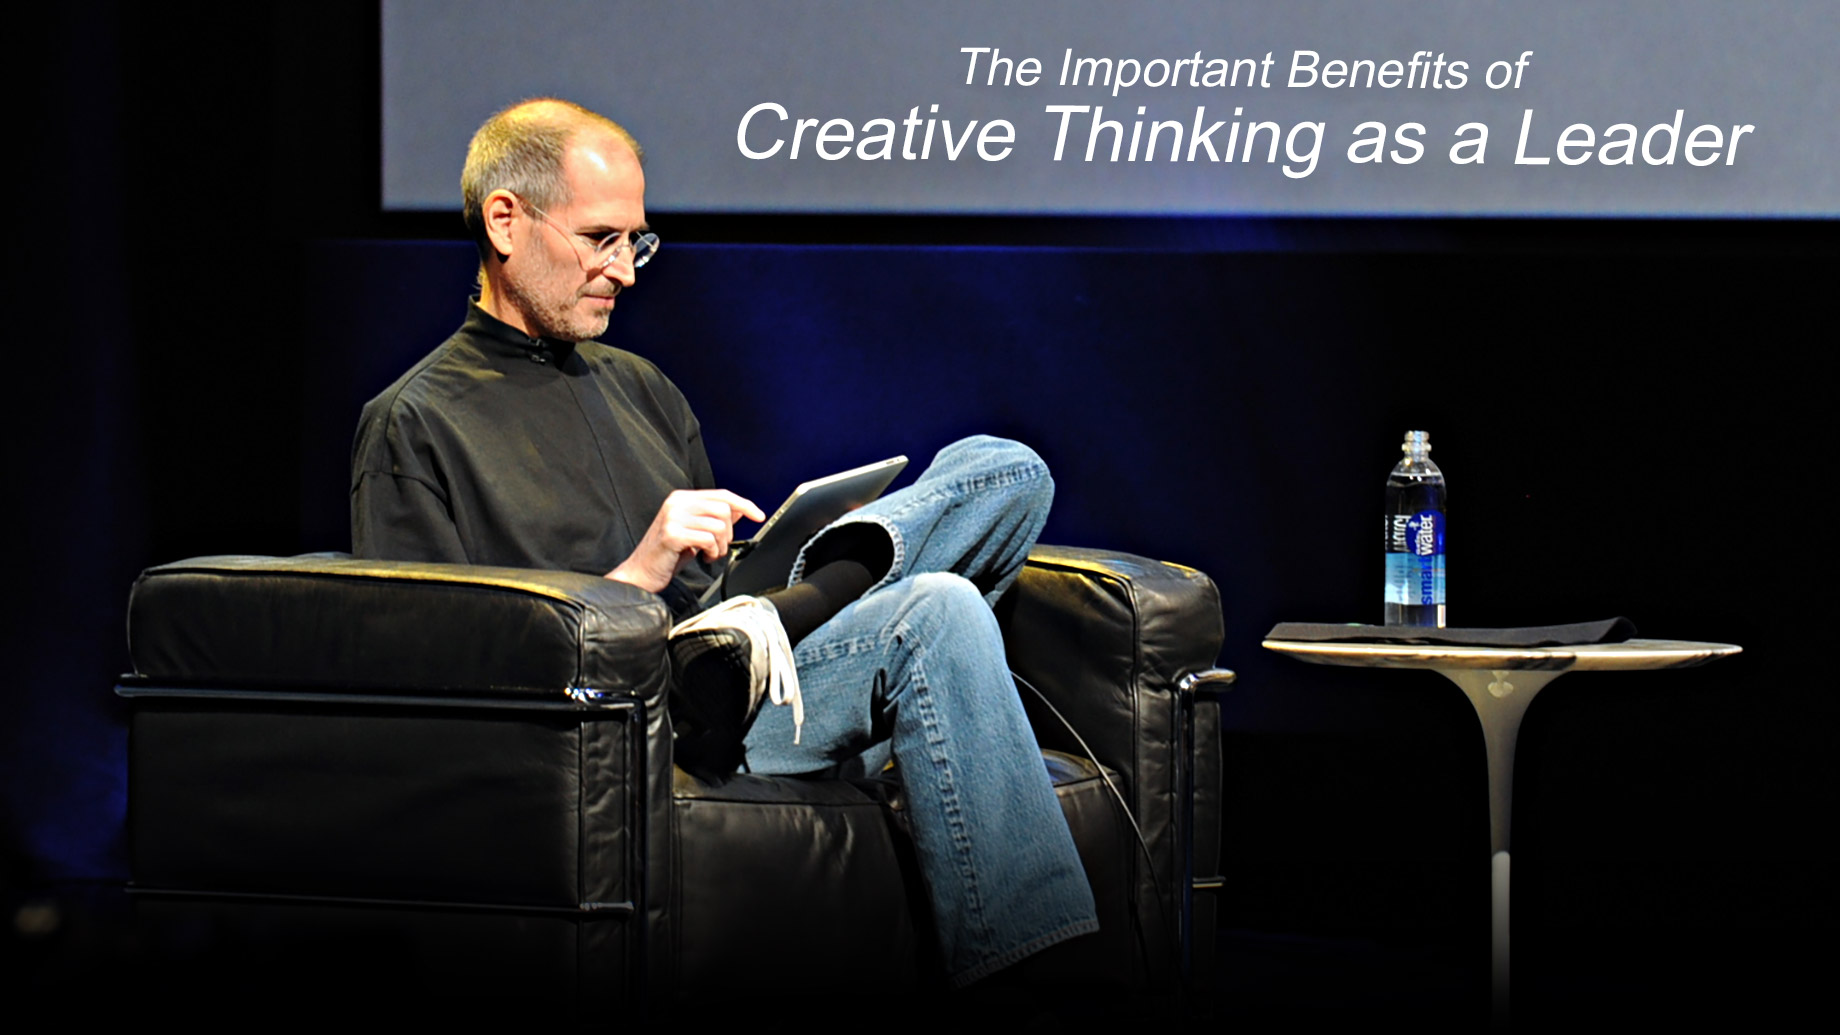 The Important Benefits of Creative Thinking as a Leader like Steve Jobs